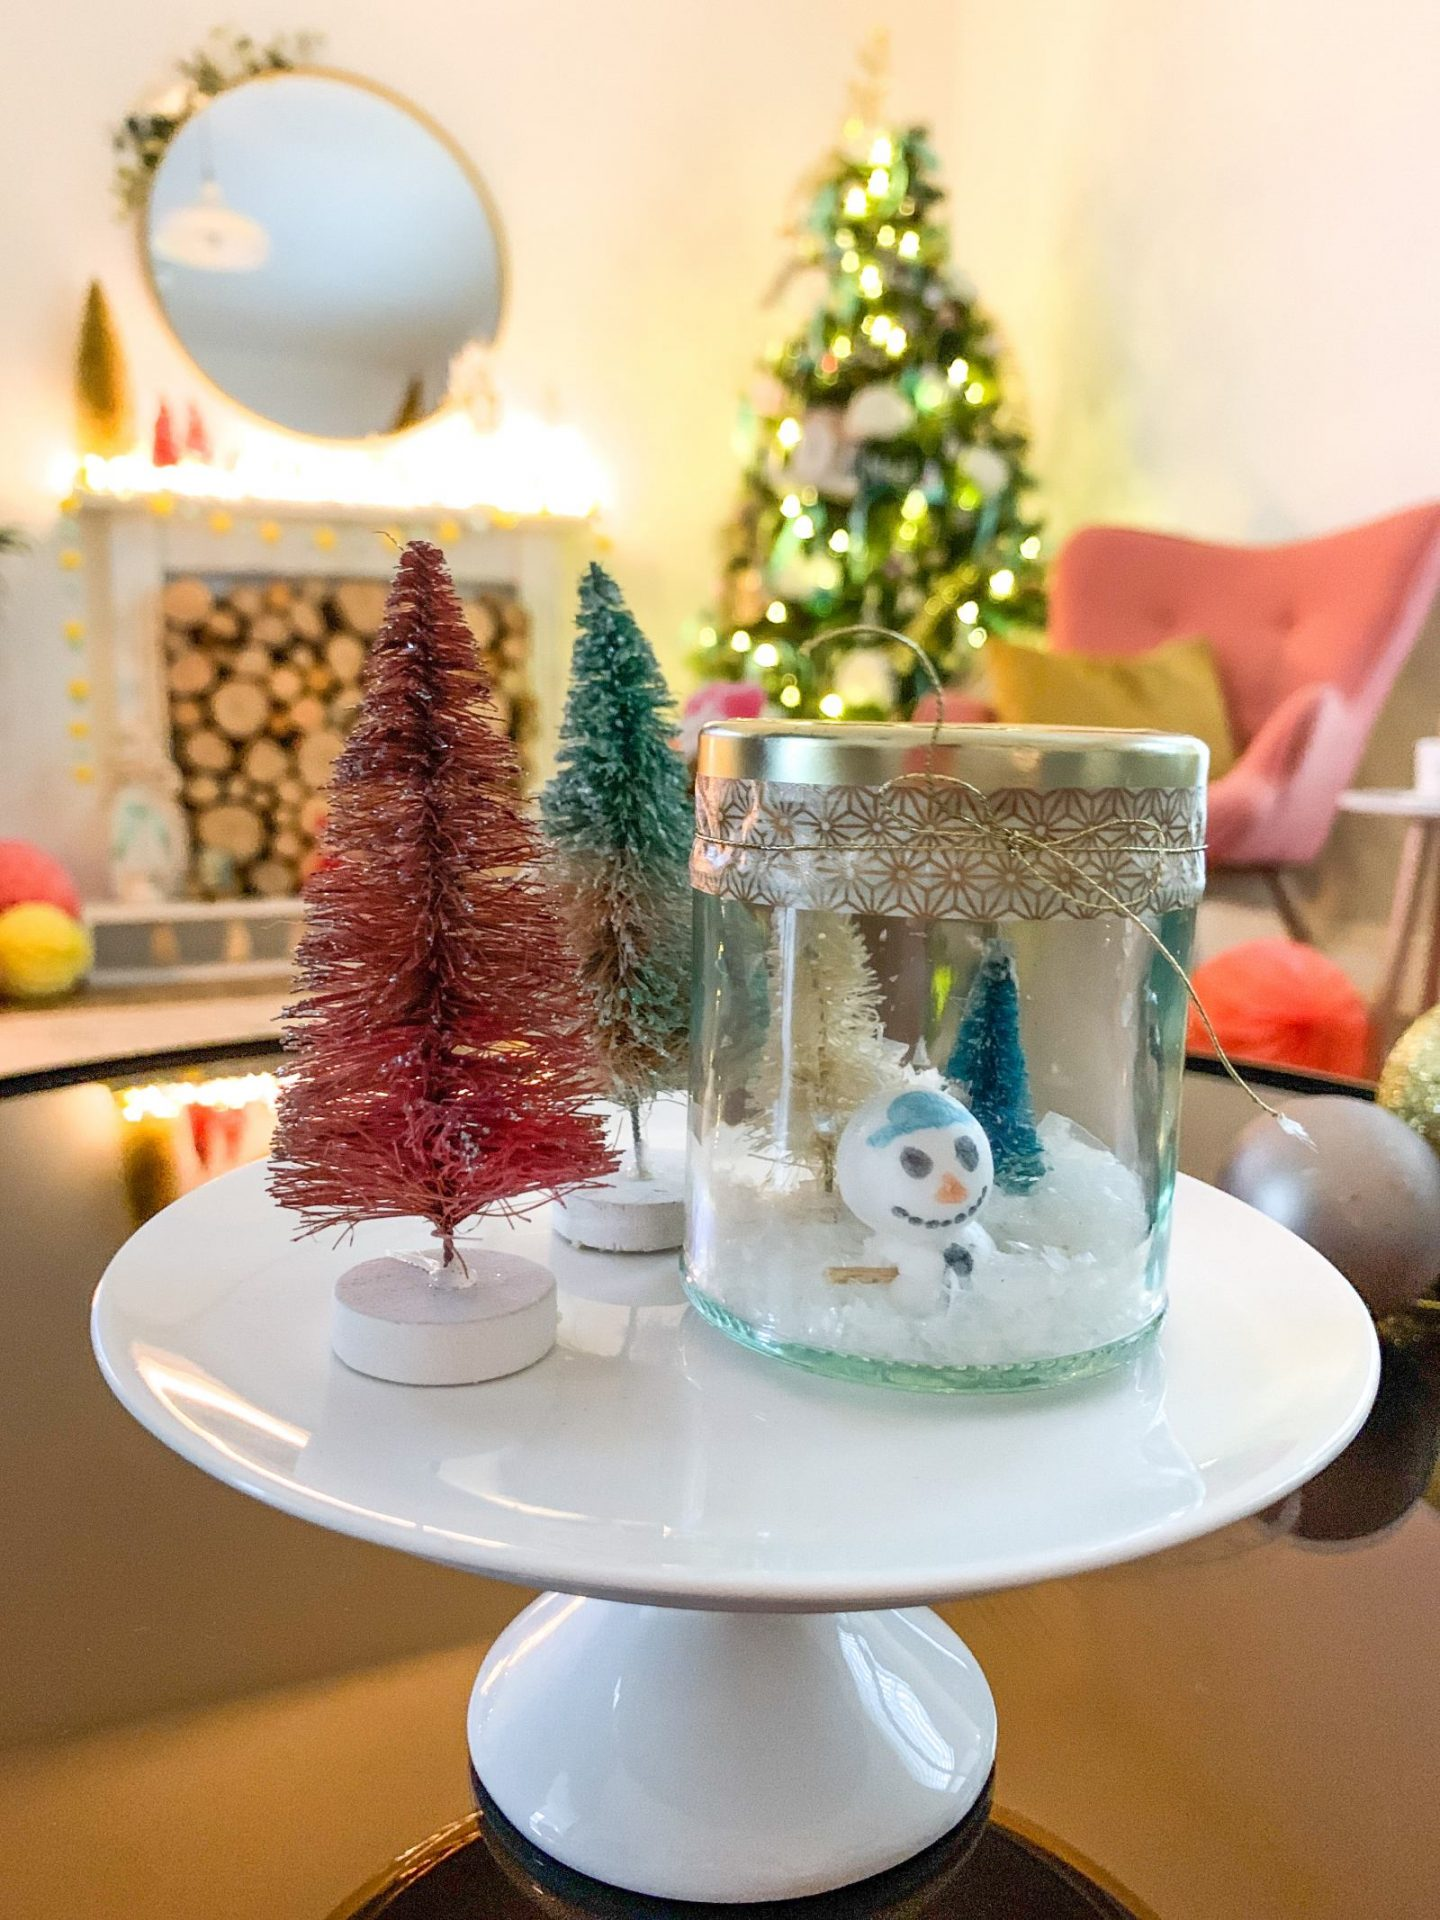 DIY SNOW GLOBE KIDS CHRISTMAS CRAFT